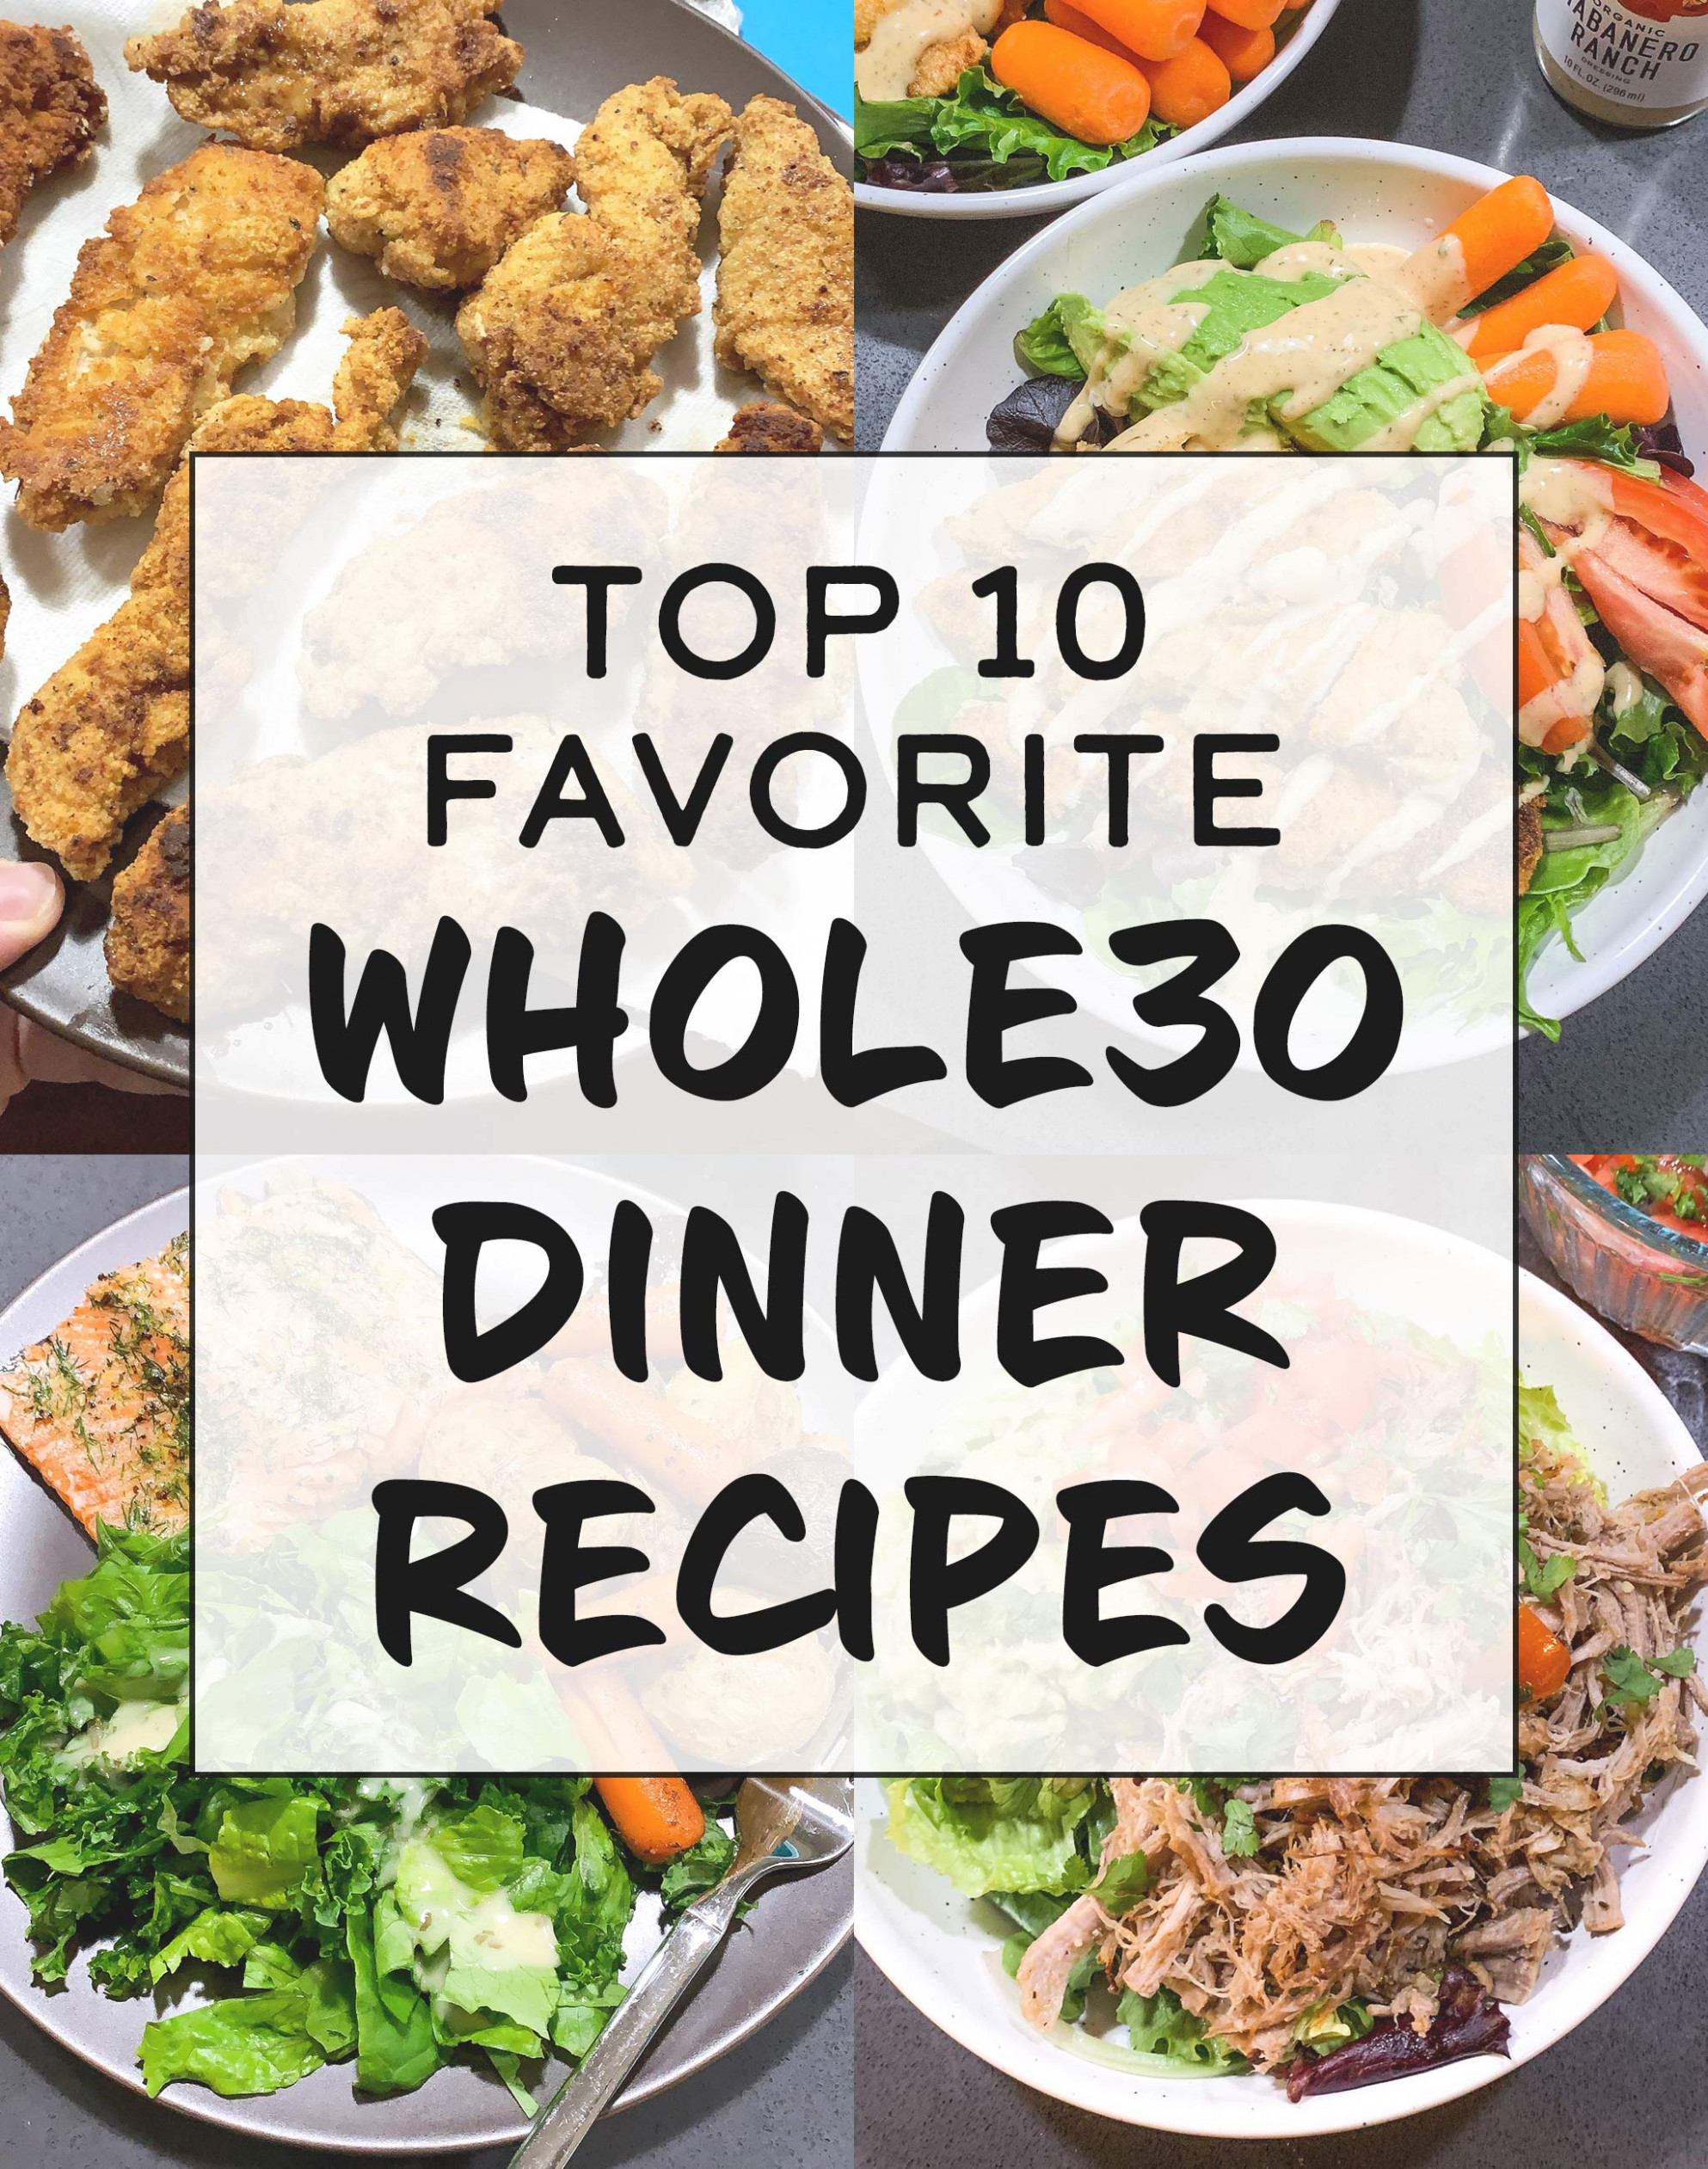 Top 12 Favorite Whole12 Dinner Recipes - Project Meal Plan - food recipes for dinner